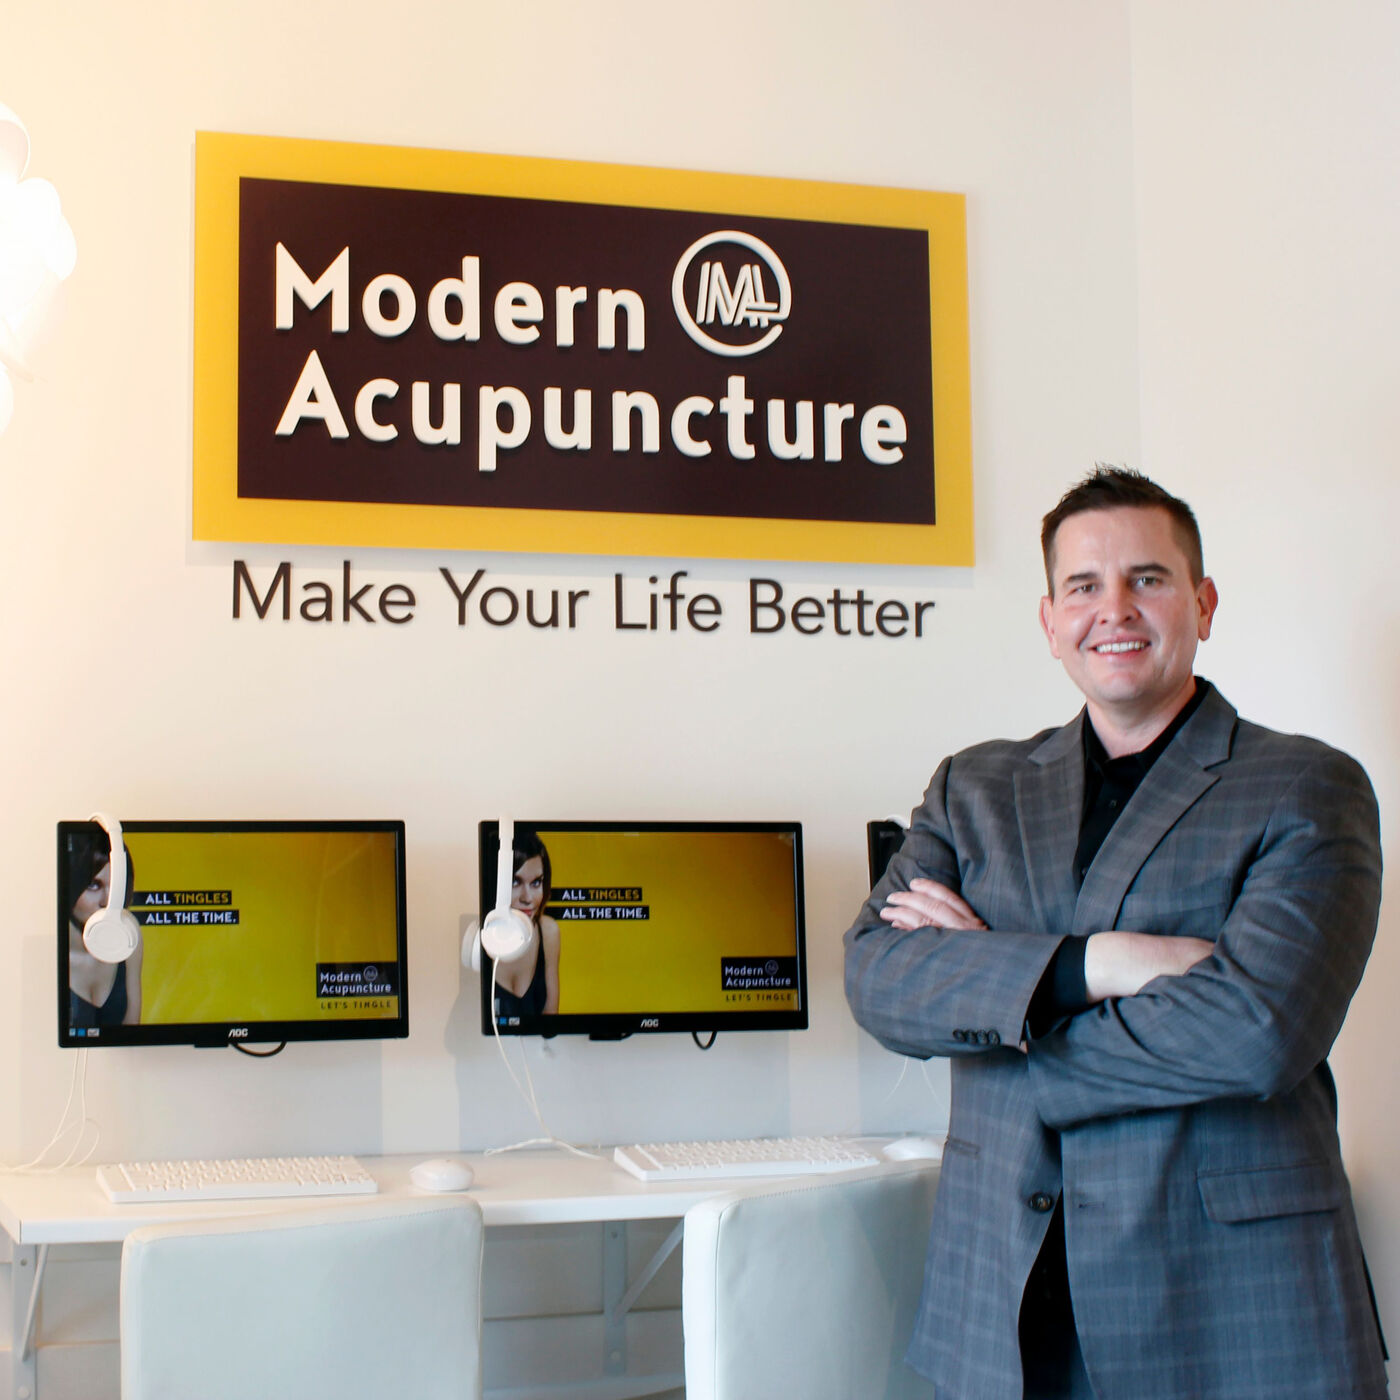 Modern Acupuncture as a Powerful Form of Self-Care - Matt Hale